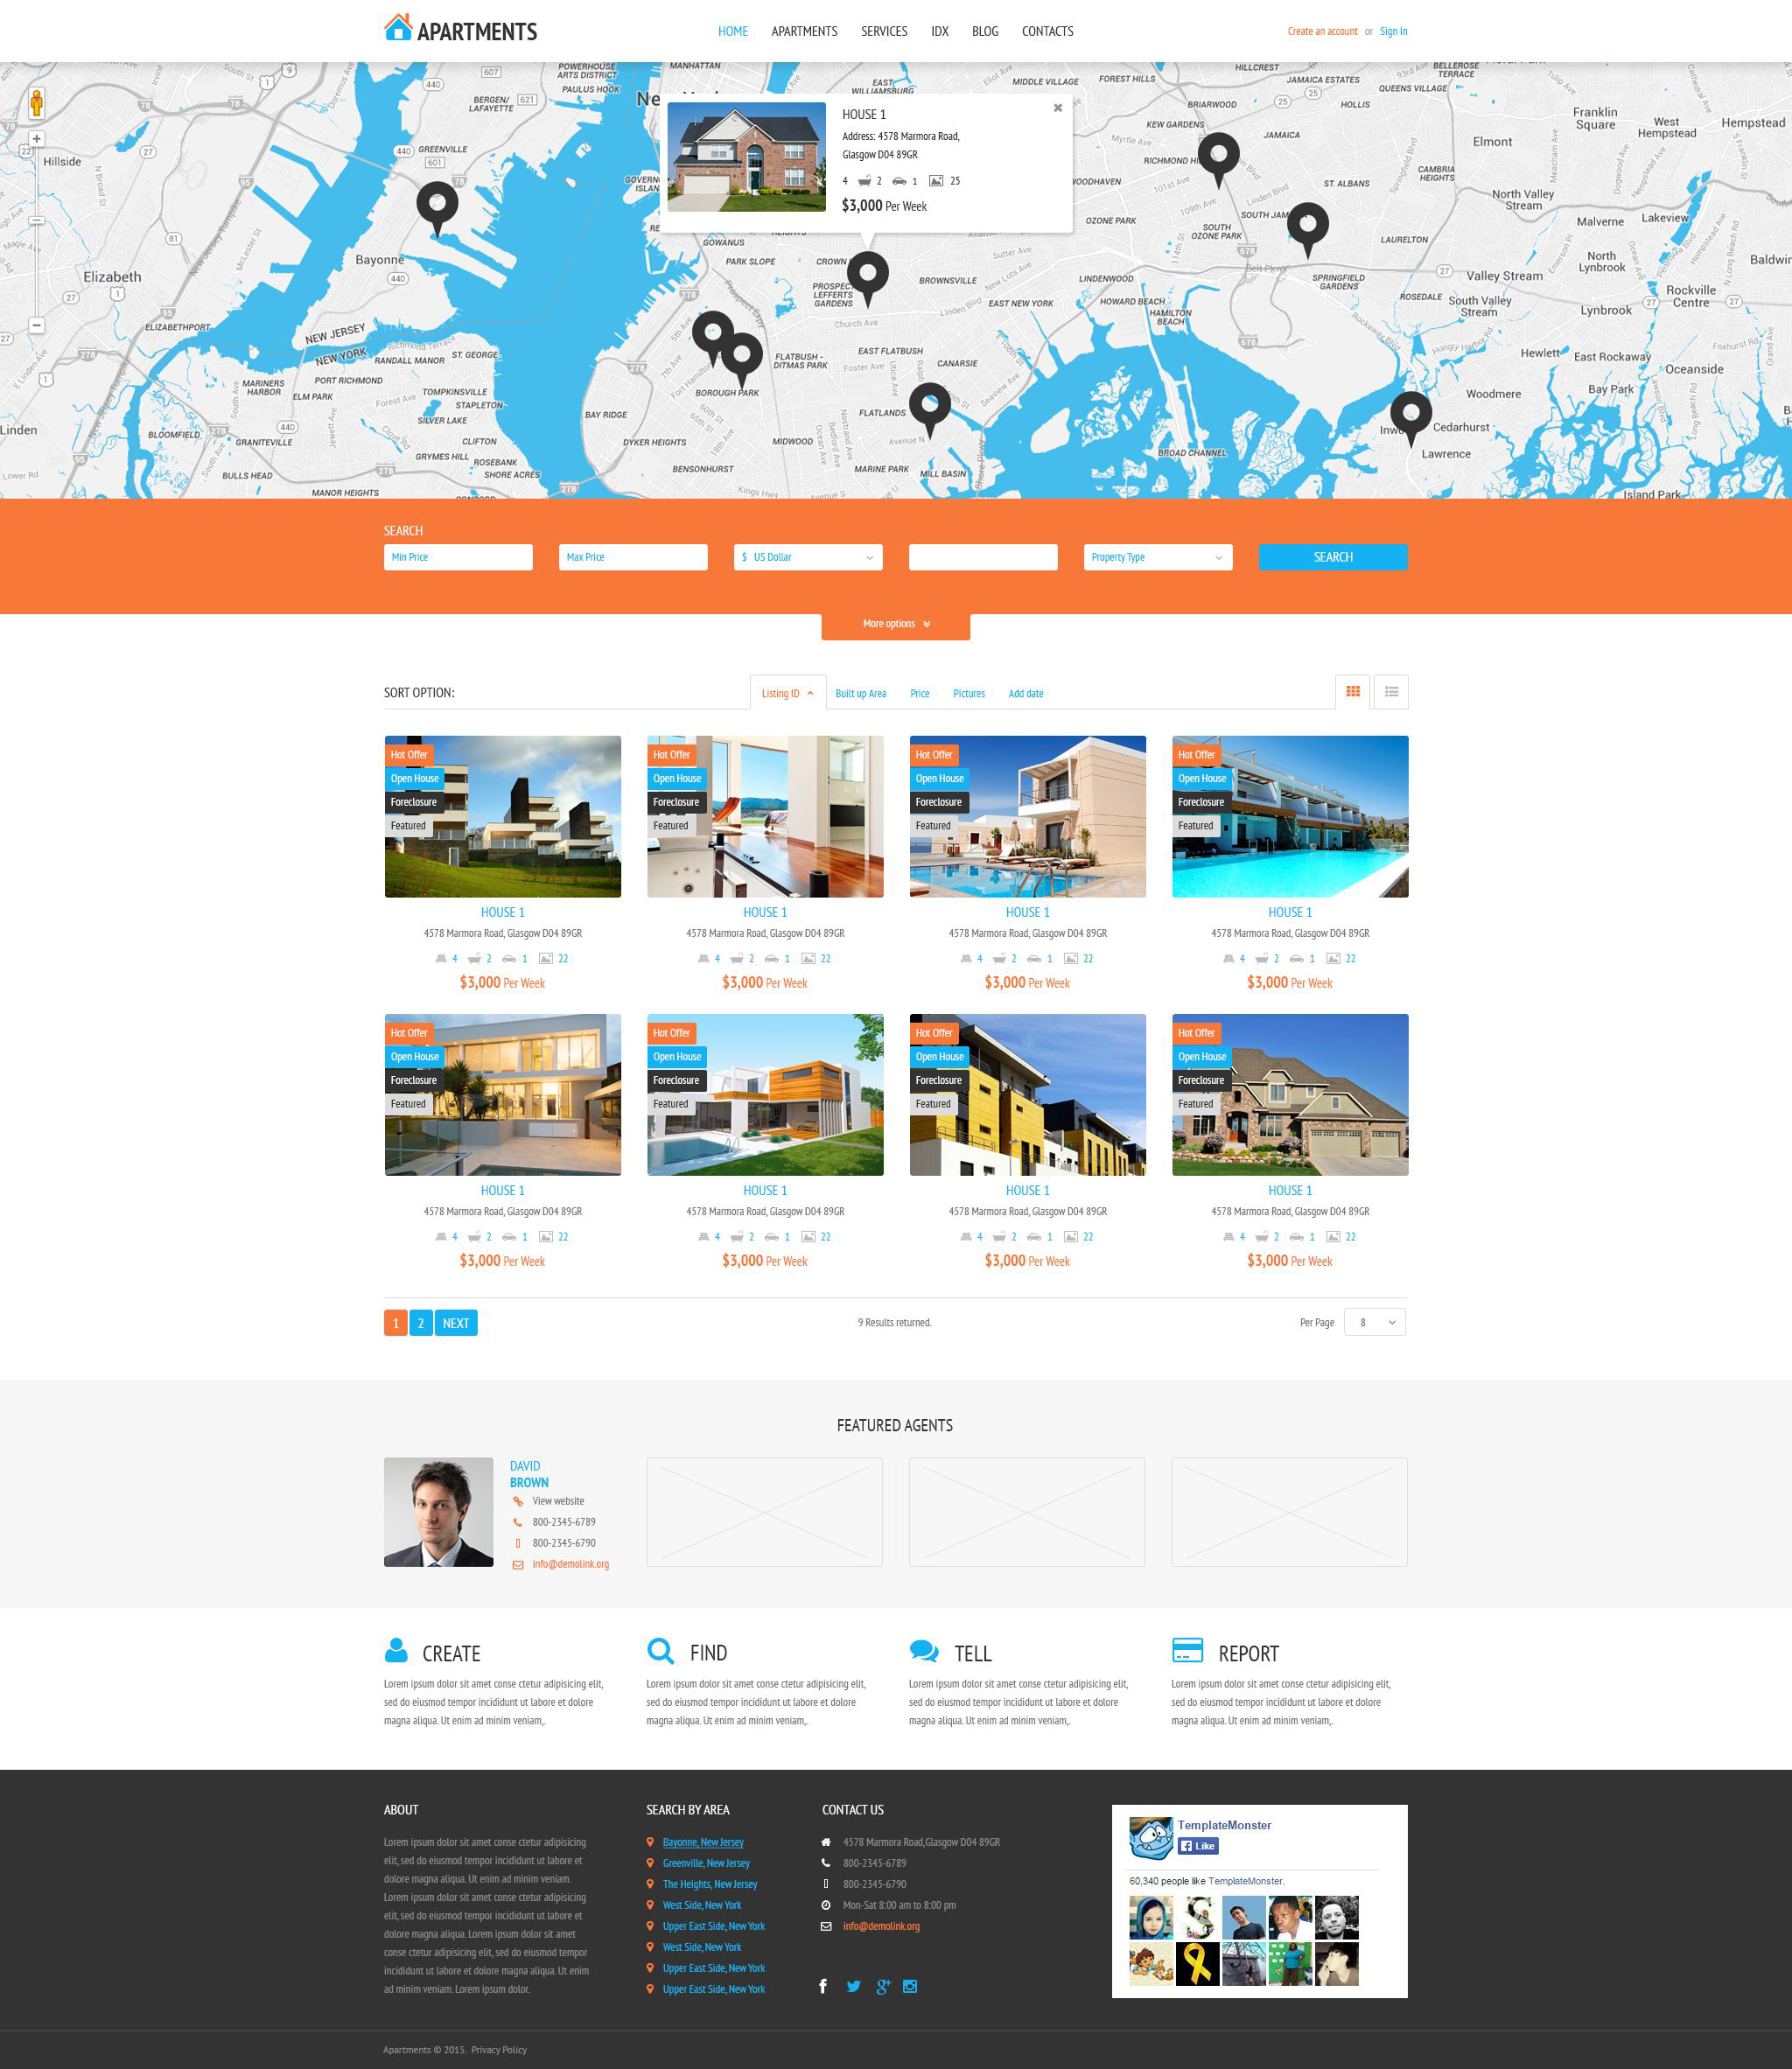 The Appartment For Rent WordPress Design 53995, one of the best WordPress themes of its kind (business, most popular), also known as appartment for rent WordPress template, real estate agency WordPress template, services WordPress template, house WordPress template, home WordPress template, apartment WordPress template, buildings WordPress template, finance WordPress template, loan WordPress template, sales WordPress template, rentals WordPress template, management WordPress template, search WordPress template, team WordPress template, money WordPress template, foreclosure WordPress template, estimator WordPress template, investment WordPress template, development WordPress template, constructions WordPress template, architecture WordPress template, engineering WordPress template, apartment WordPress template, sale WordPress template, rent WordPress template, architecture WordPress template, broker WordPress template, lots and related with appartment for rent, real estate agency, services, house, home, apartment, buildings, finance, loan, sales, rentals, management, search, team, money, foreclosure, estimator, investment, development, constructions, architecture, engineering, apartment, sale, rent, architecture, broker, lots, etc.